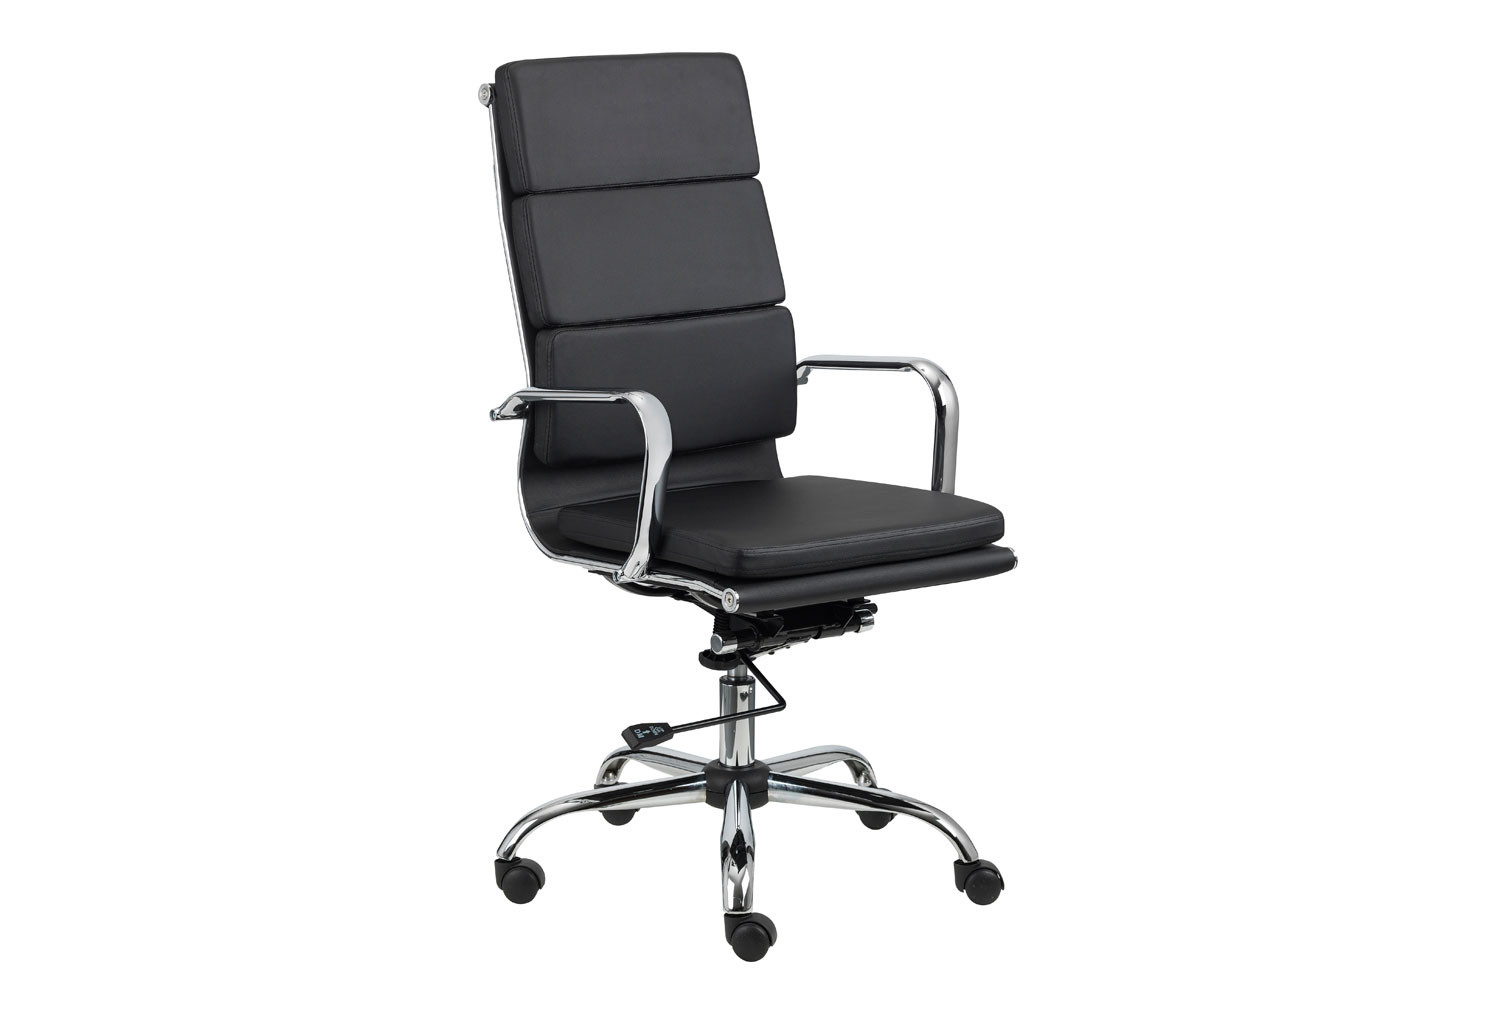 Lawton Home Office Chair